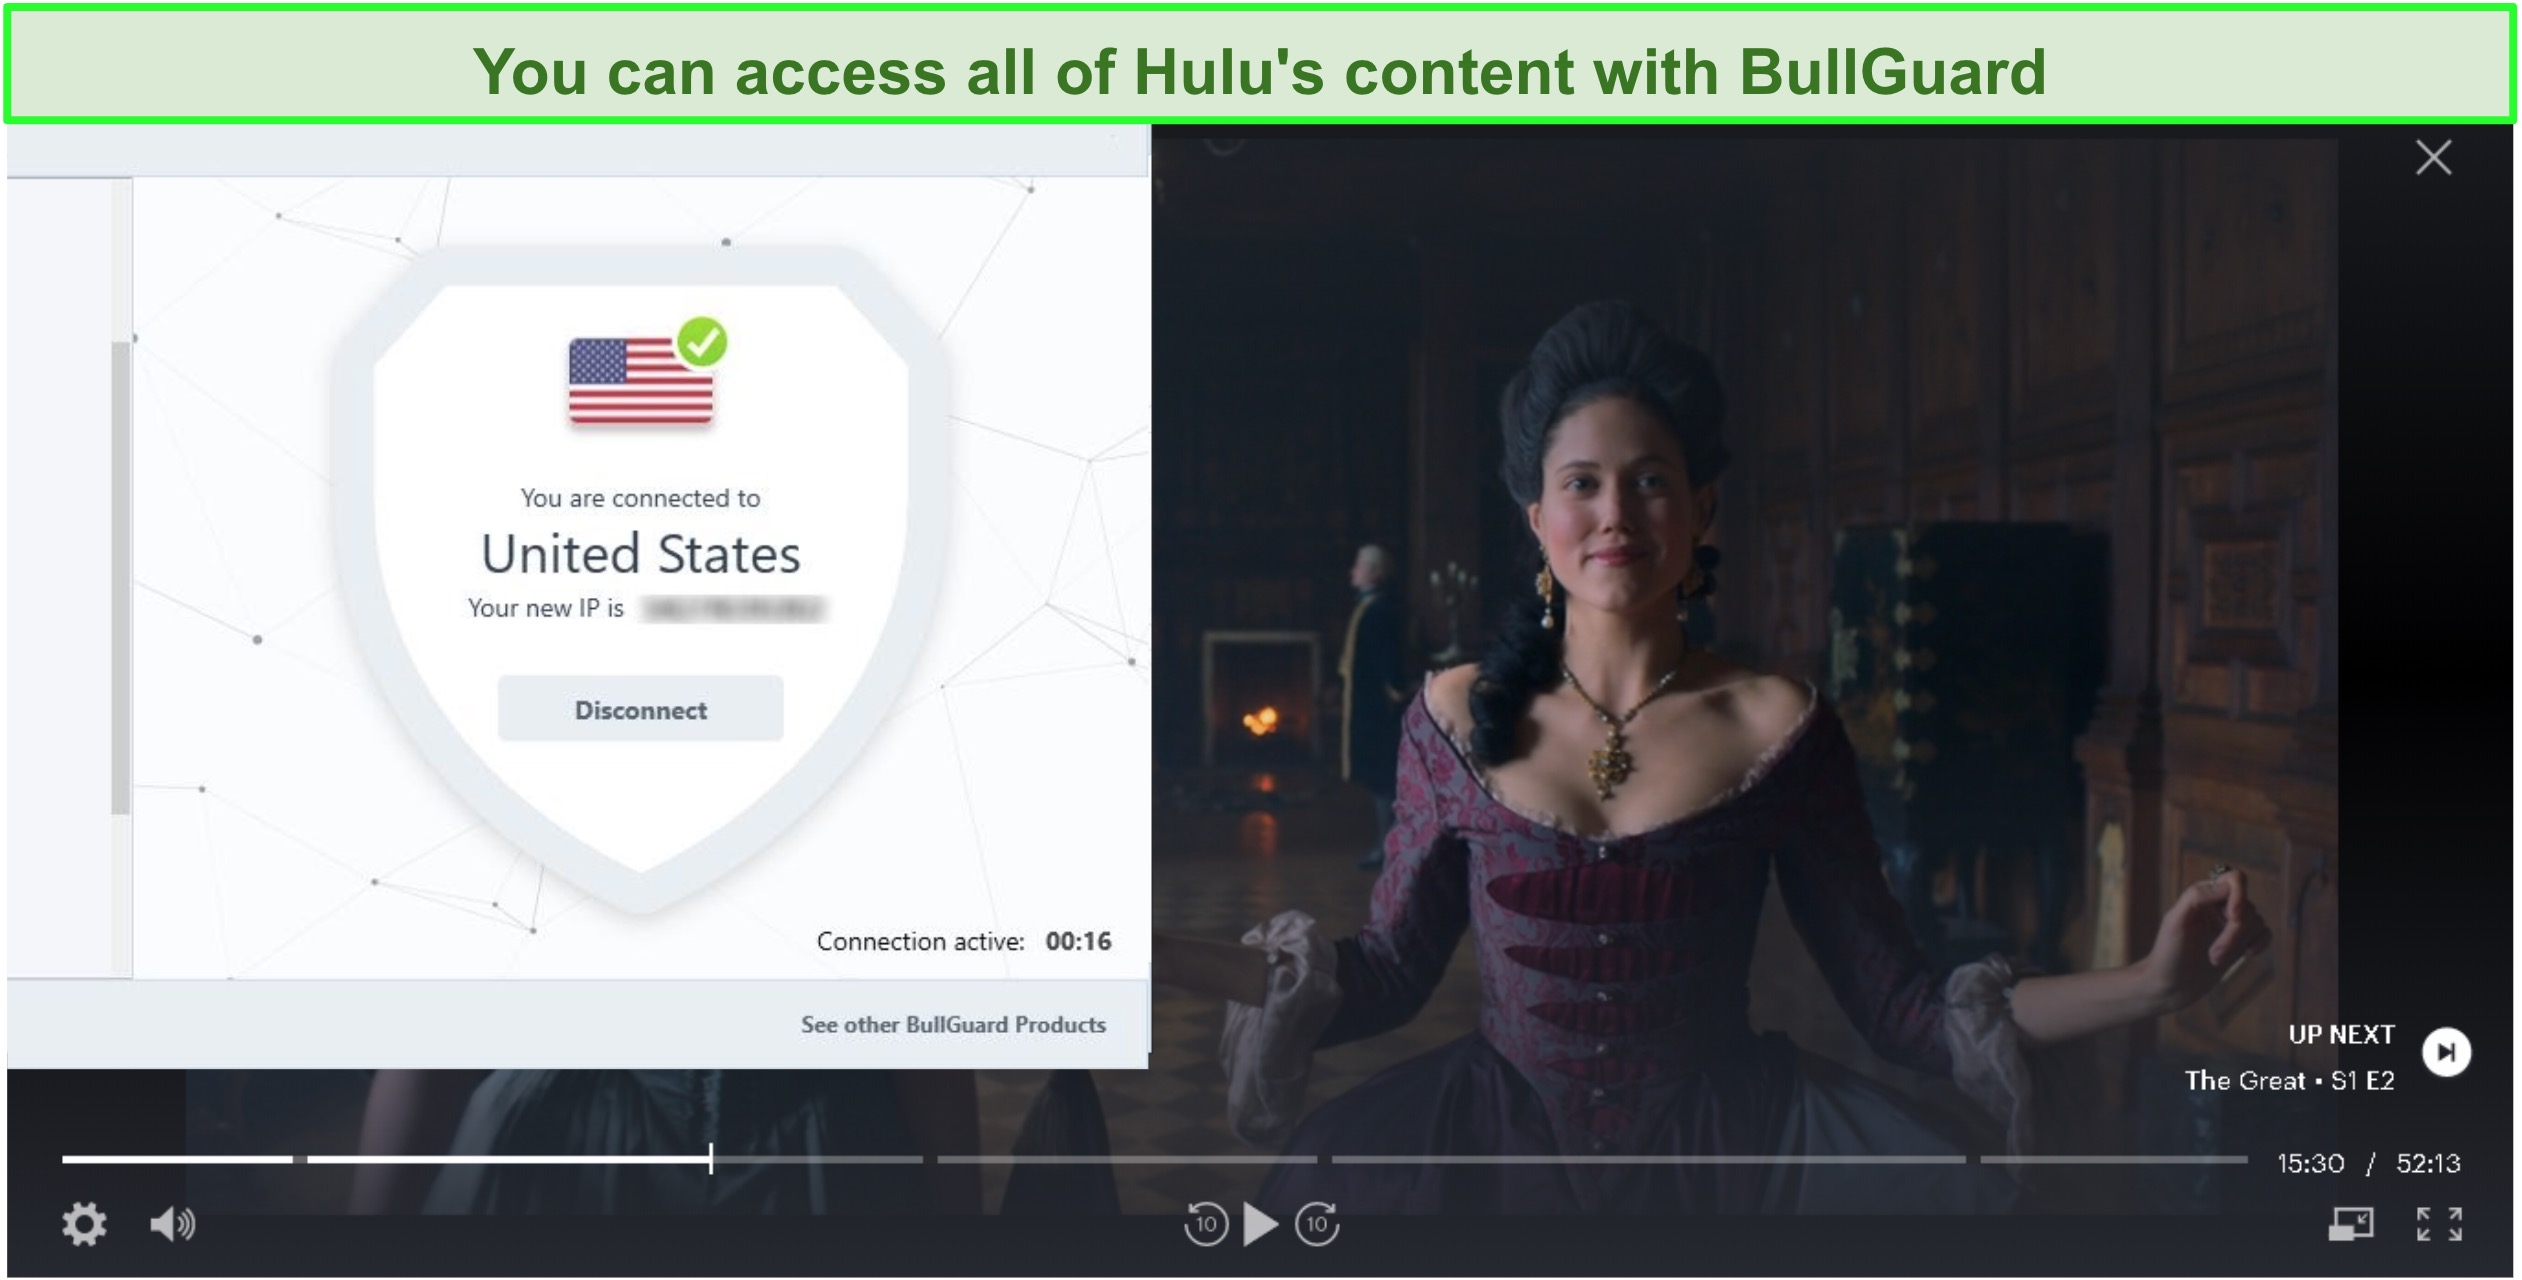 Screenshot of The Great on Hulu with BullGuard connected